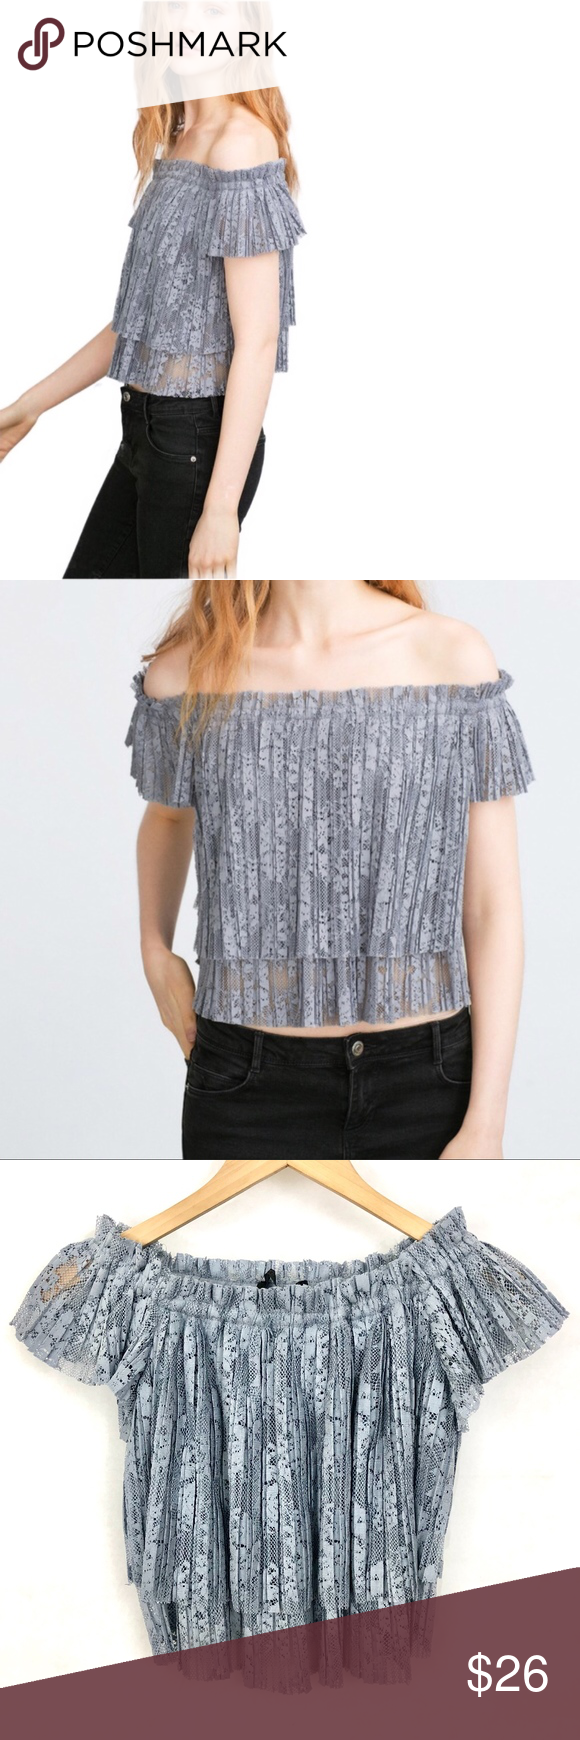 """a0ce219089a4c8 ZARA Lace Pleated Off the Shoulder Top •Blue •Approximate measurements   body length 14.5"""" center front top elastic 14"""" flat"""